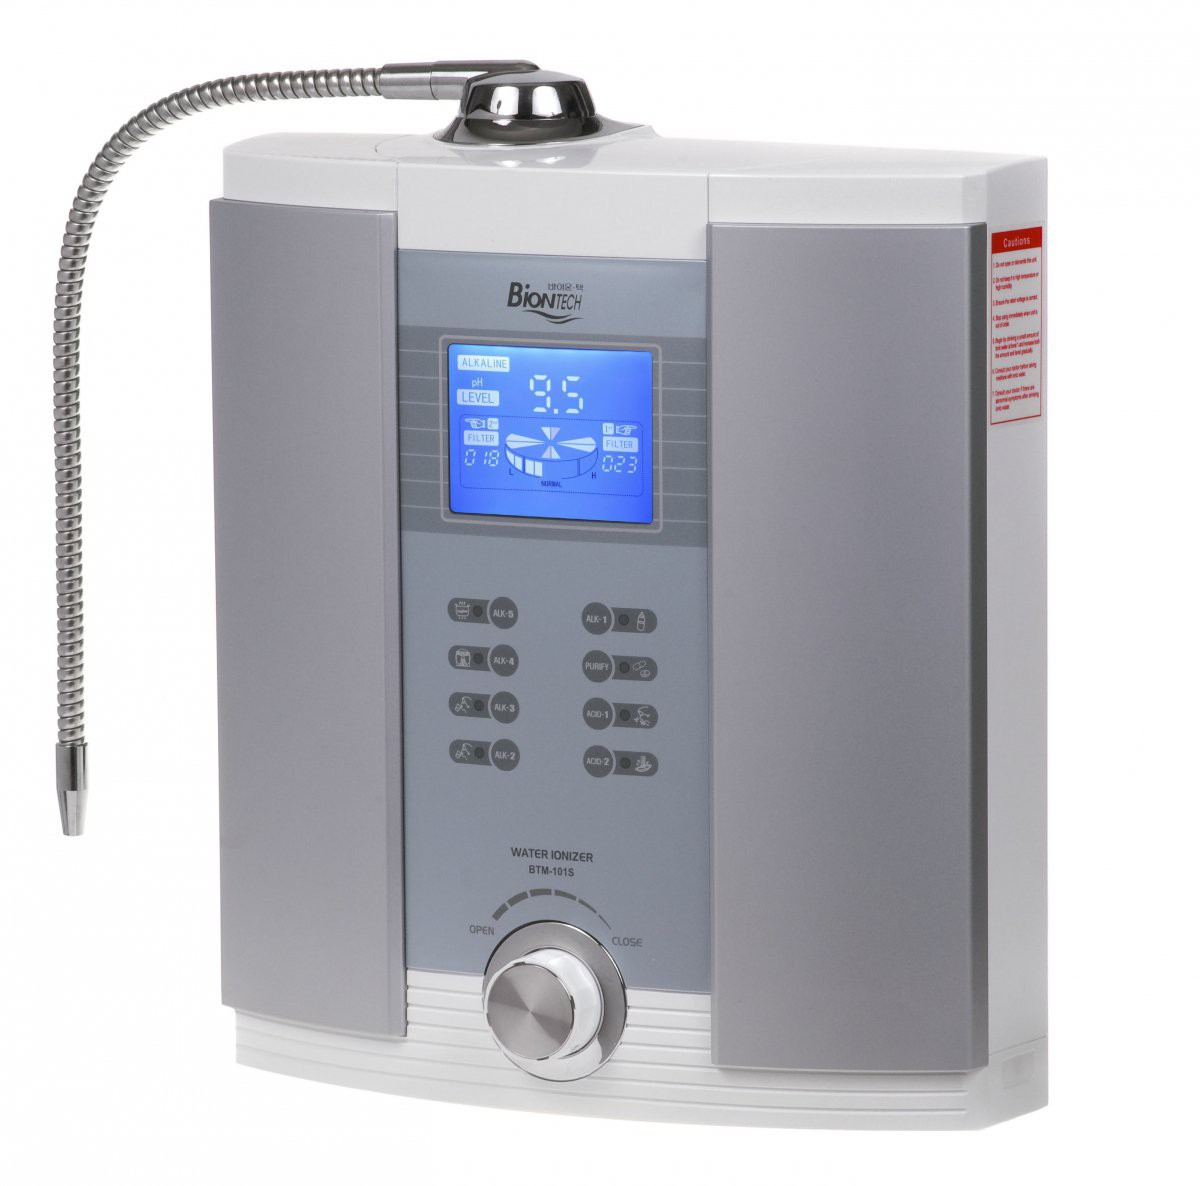 Biontech Btm 101s Ultimate Water Ionizer 9 Plates Skrzydla Natury